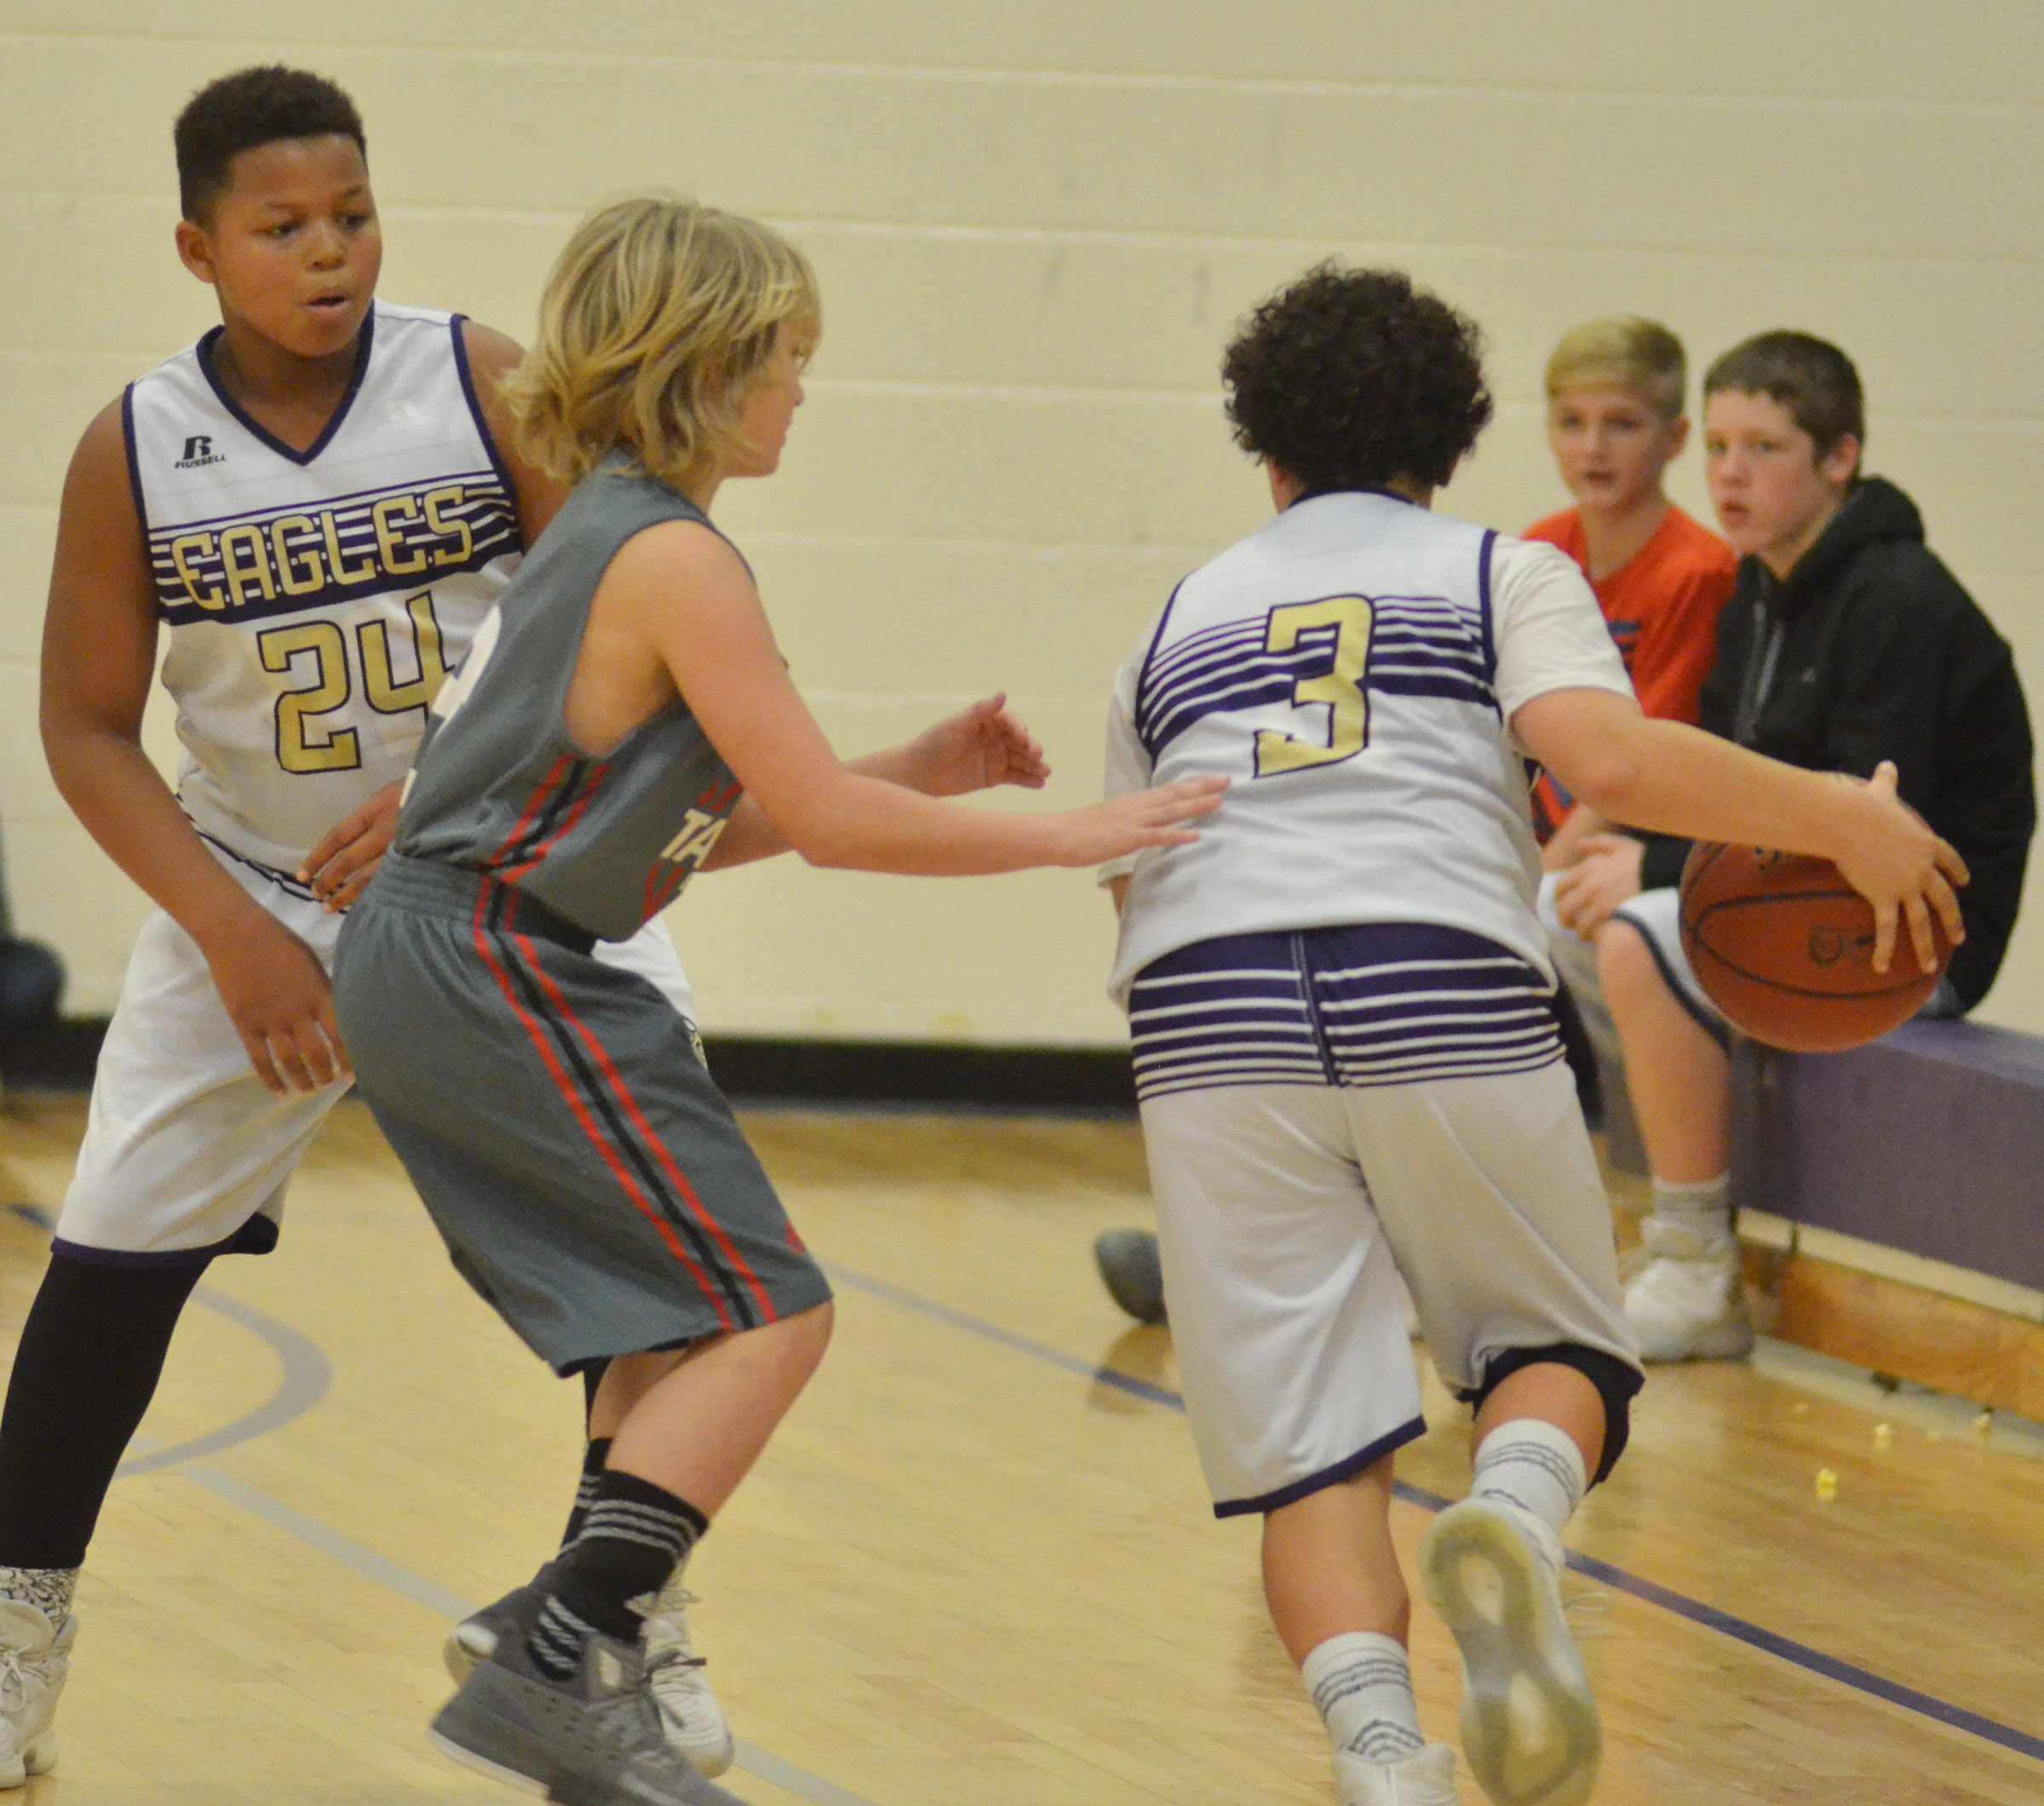 CMS seventh-grader Kaydon Taylor drives the ball as classmate Keondre Weathers plays defense.